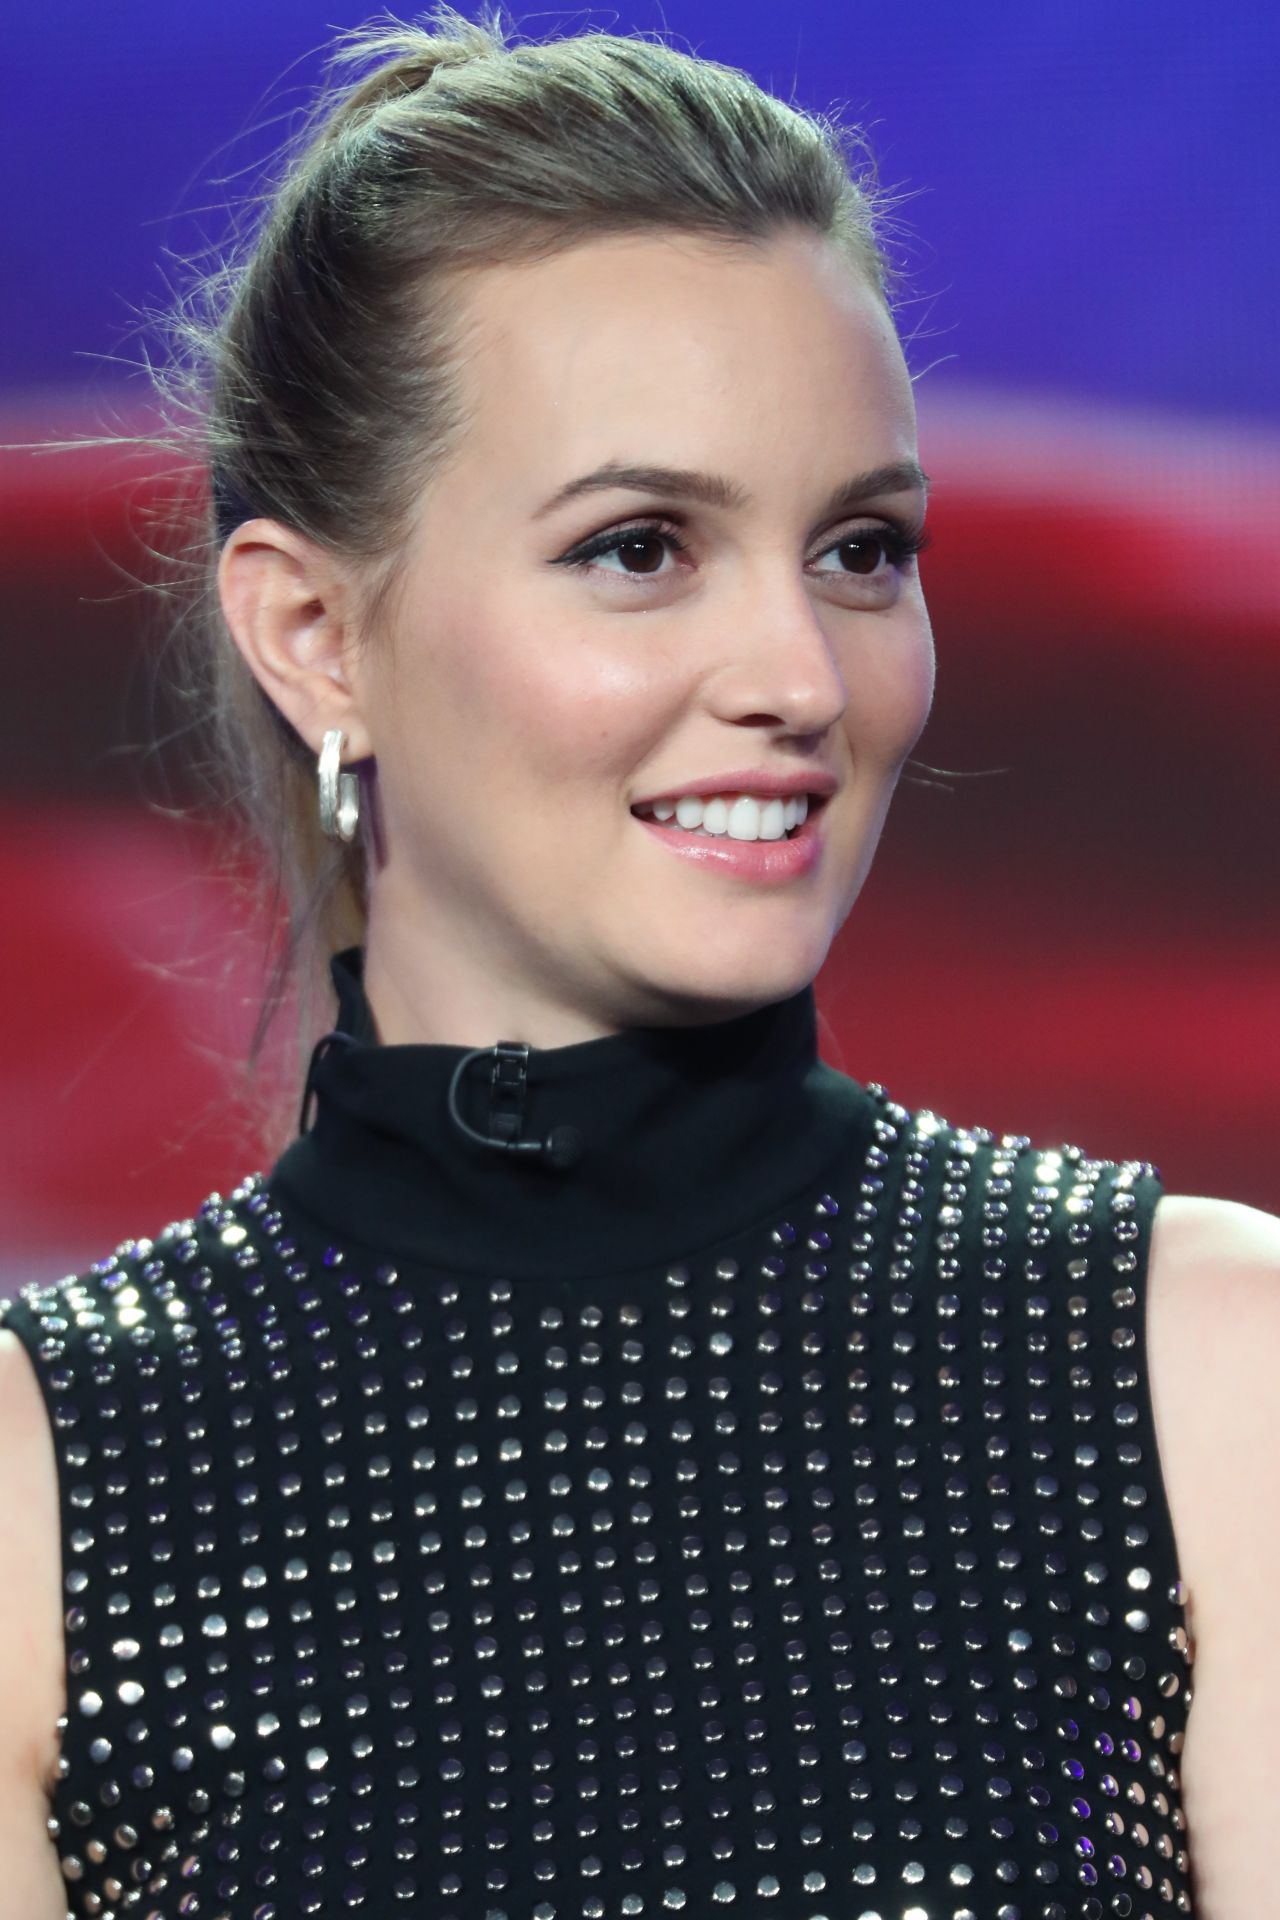 Leighton Meester Images Fashion Magazine Hd Wallpaper And: 2017 Winter TCA Tour 1/11/ 2017